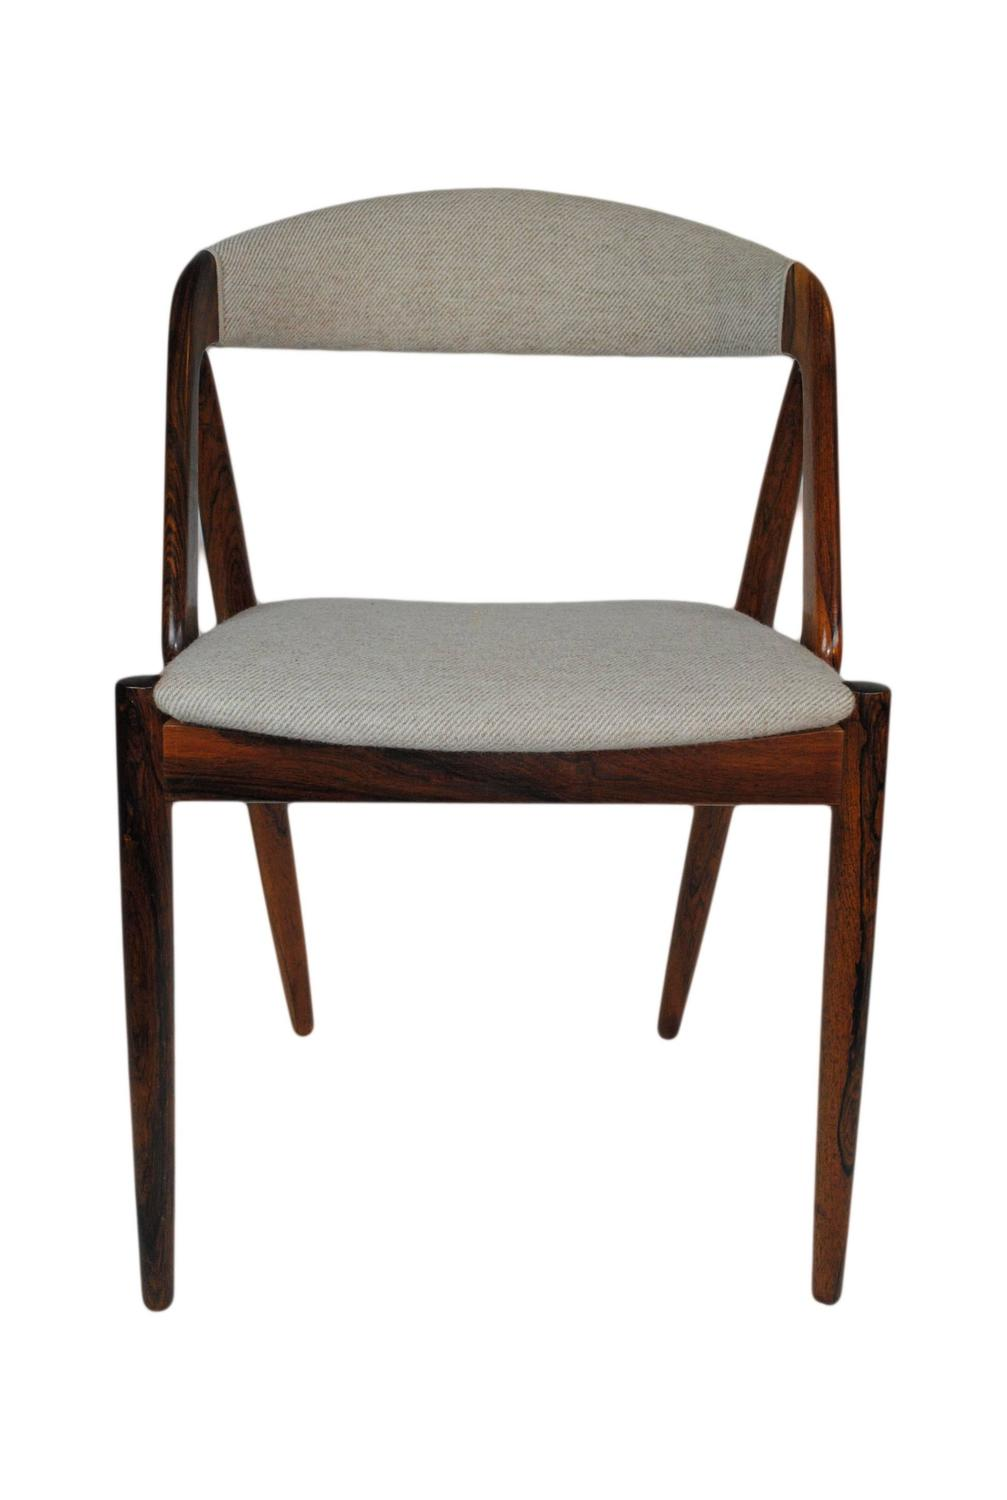 Kai Kristiansen Brazilian Rosewood Dining Chairs Set Of Four At 1stdibs